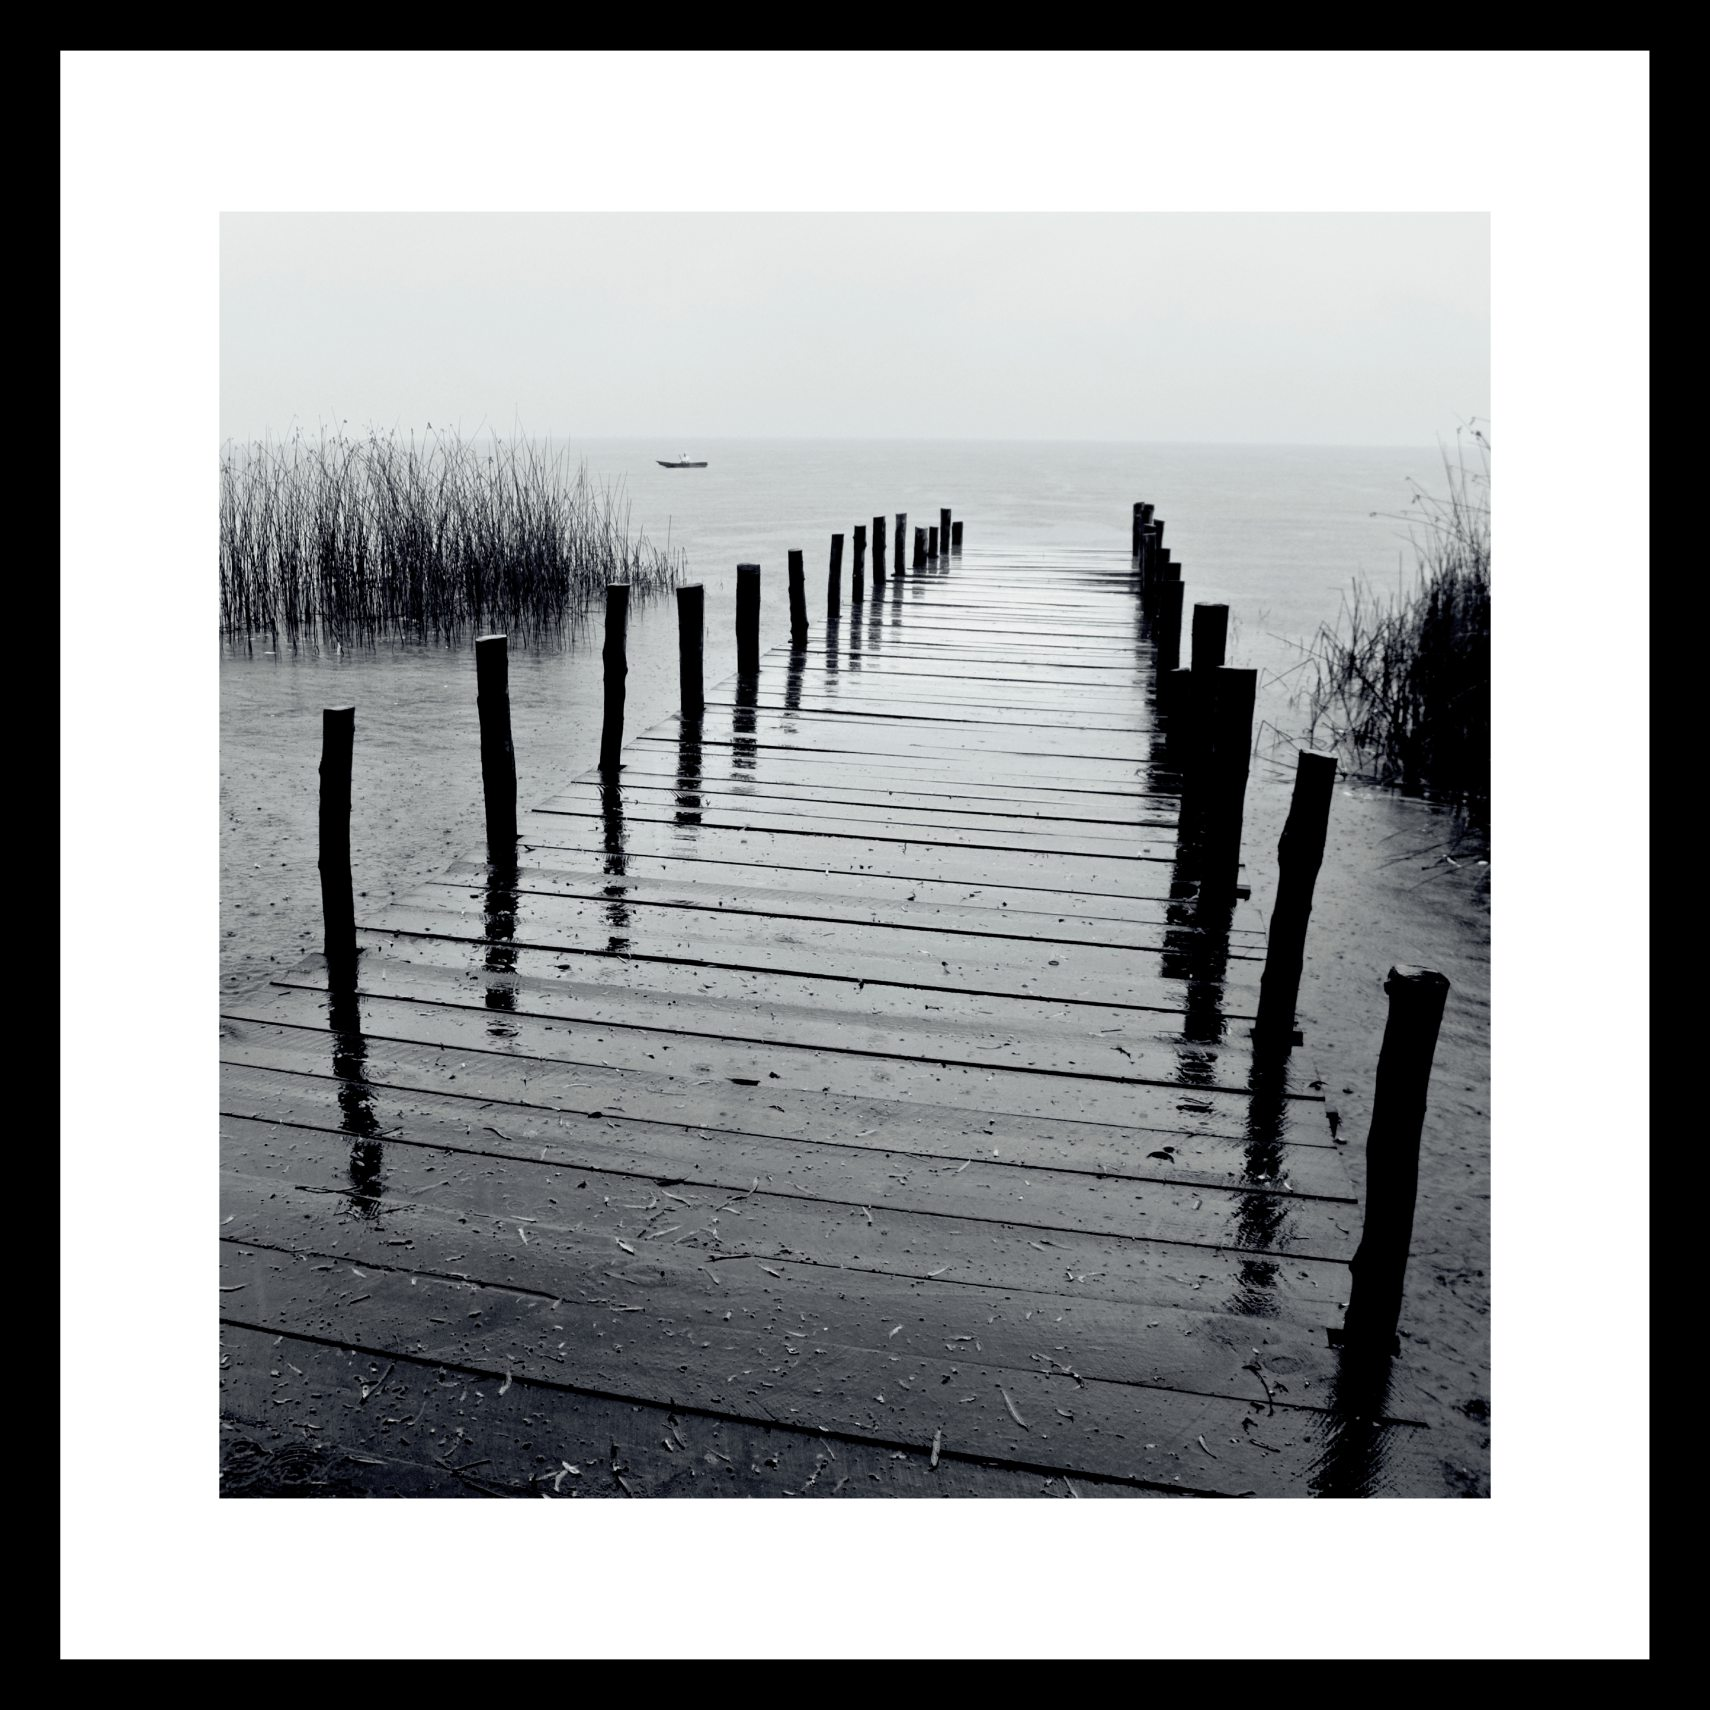 ART GALLERY Plakat 40 x 40 x 1,5 cm - Bridge I - B/W og ramme i 15 mm sort fyrretræ